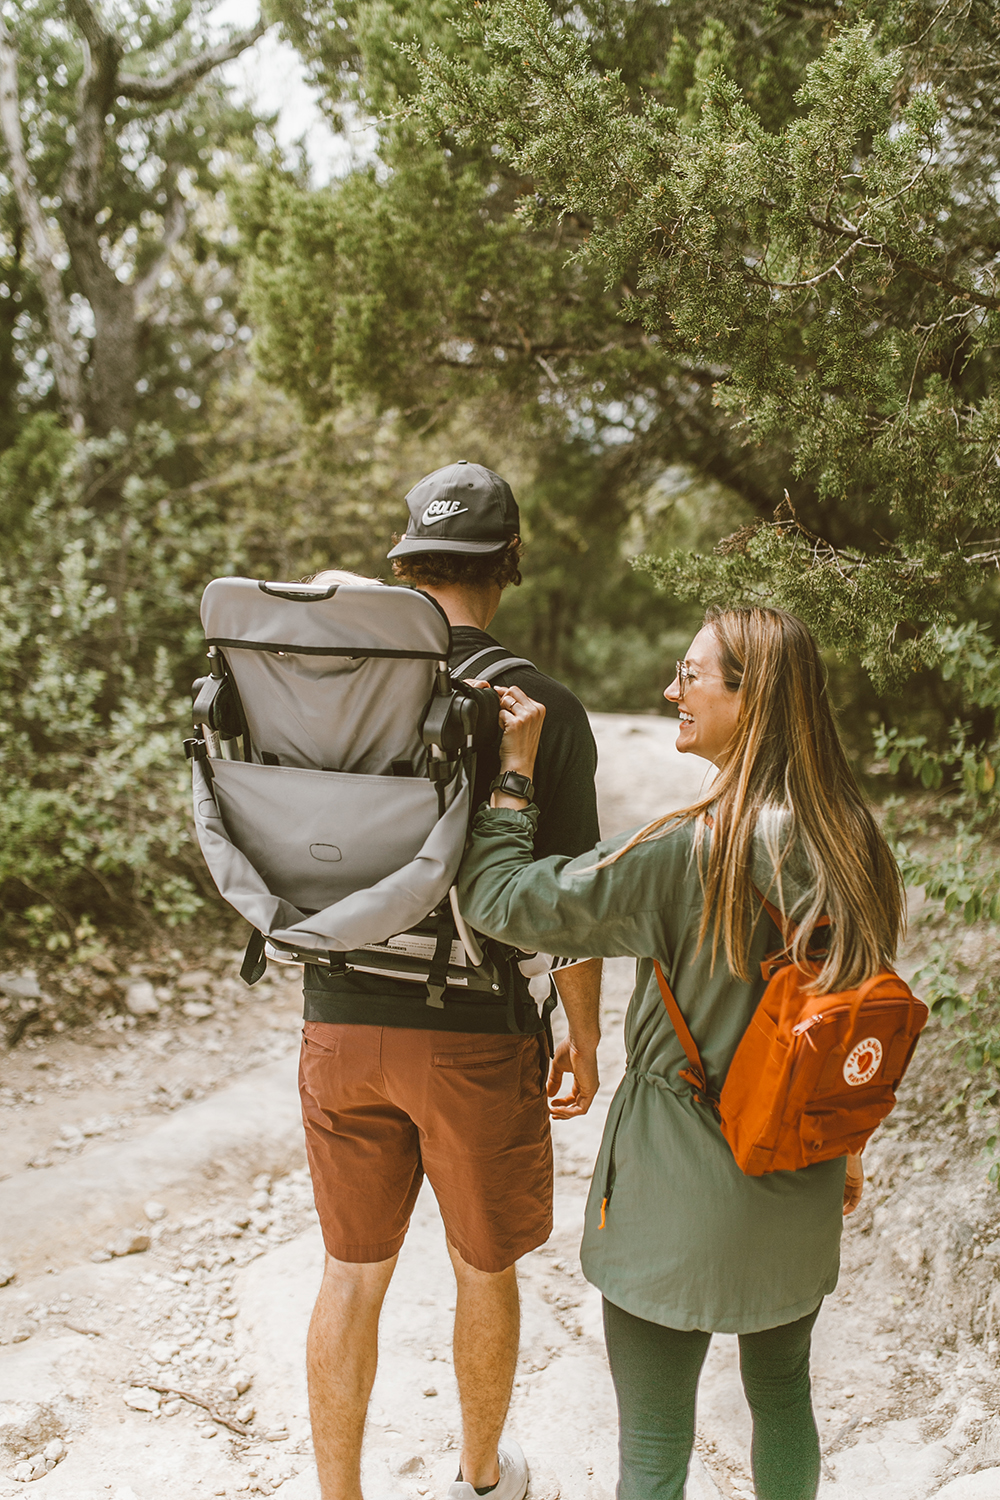 livvyland-blog-olivia-watson-austin-texas-greenbelt-hike-nature-walk-fjallraven-kanken-mini-autumn-leaf-baby-backpack-5